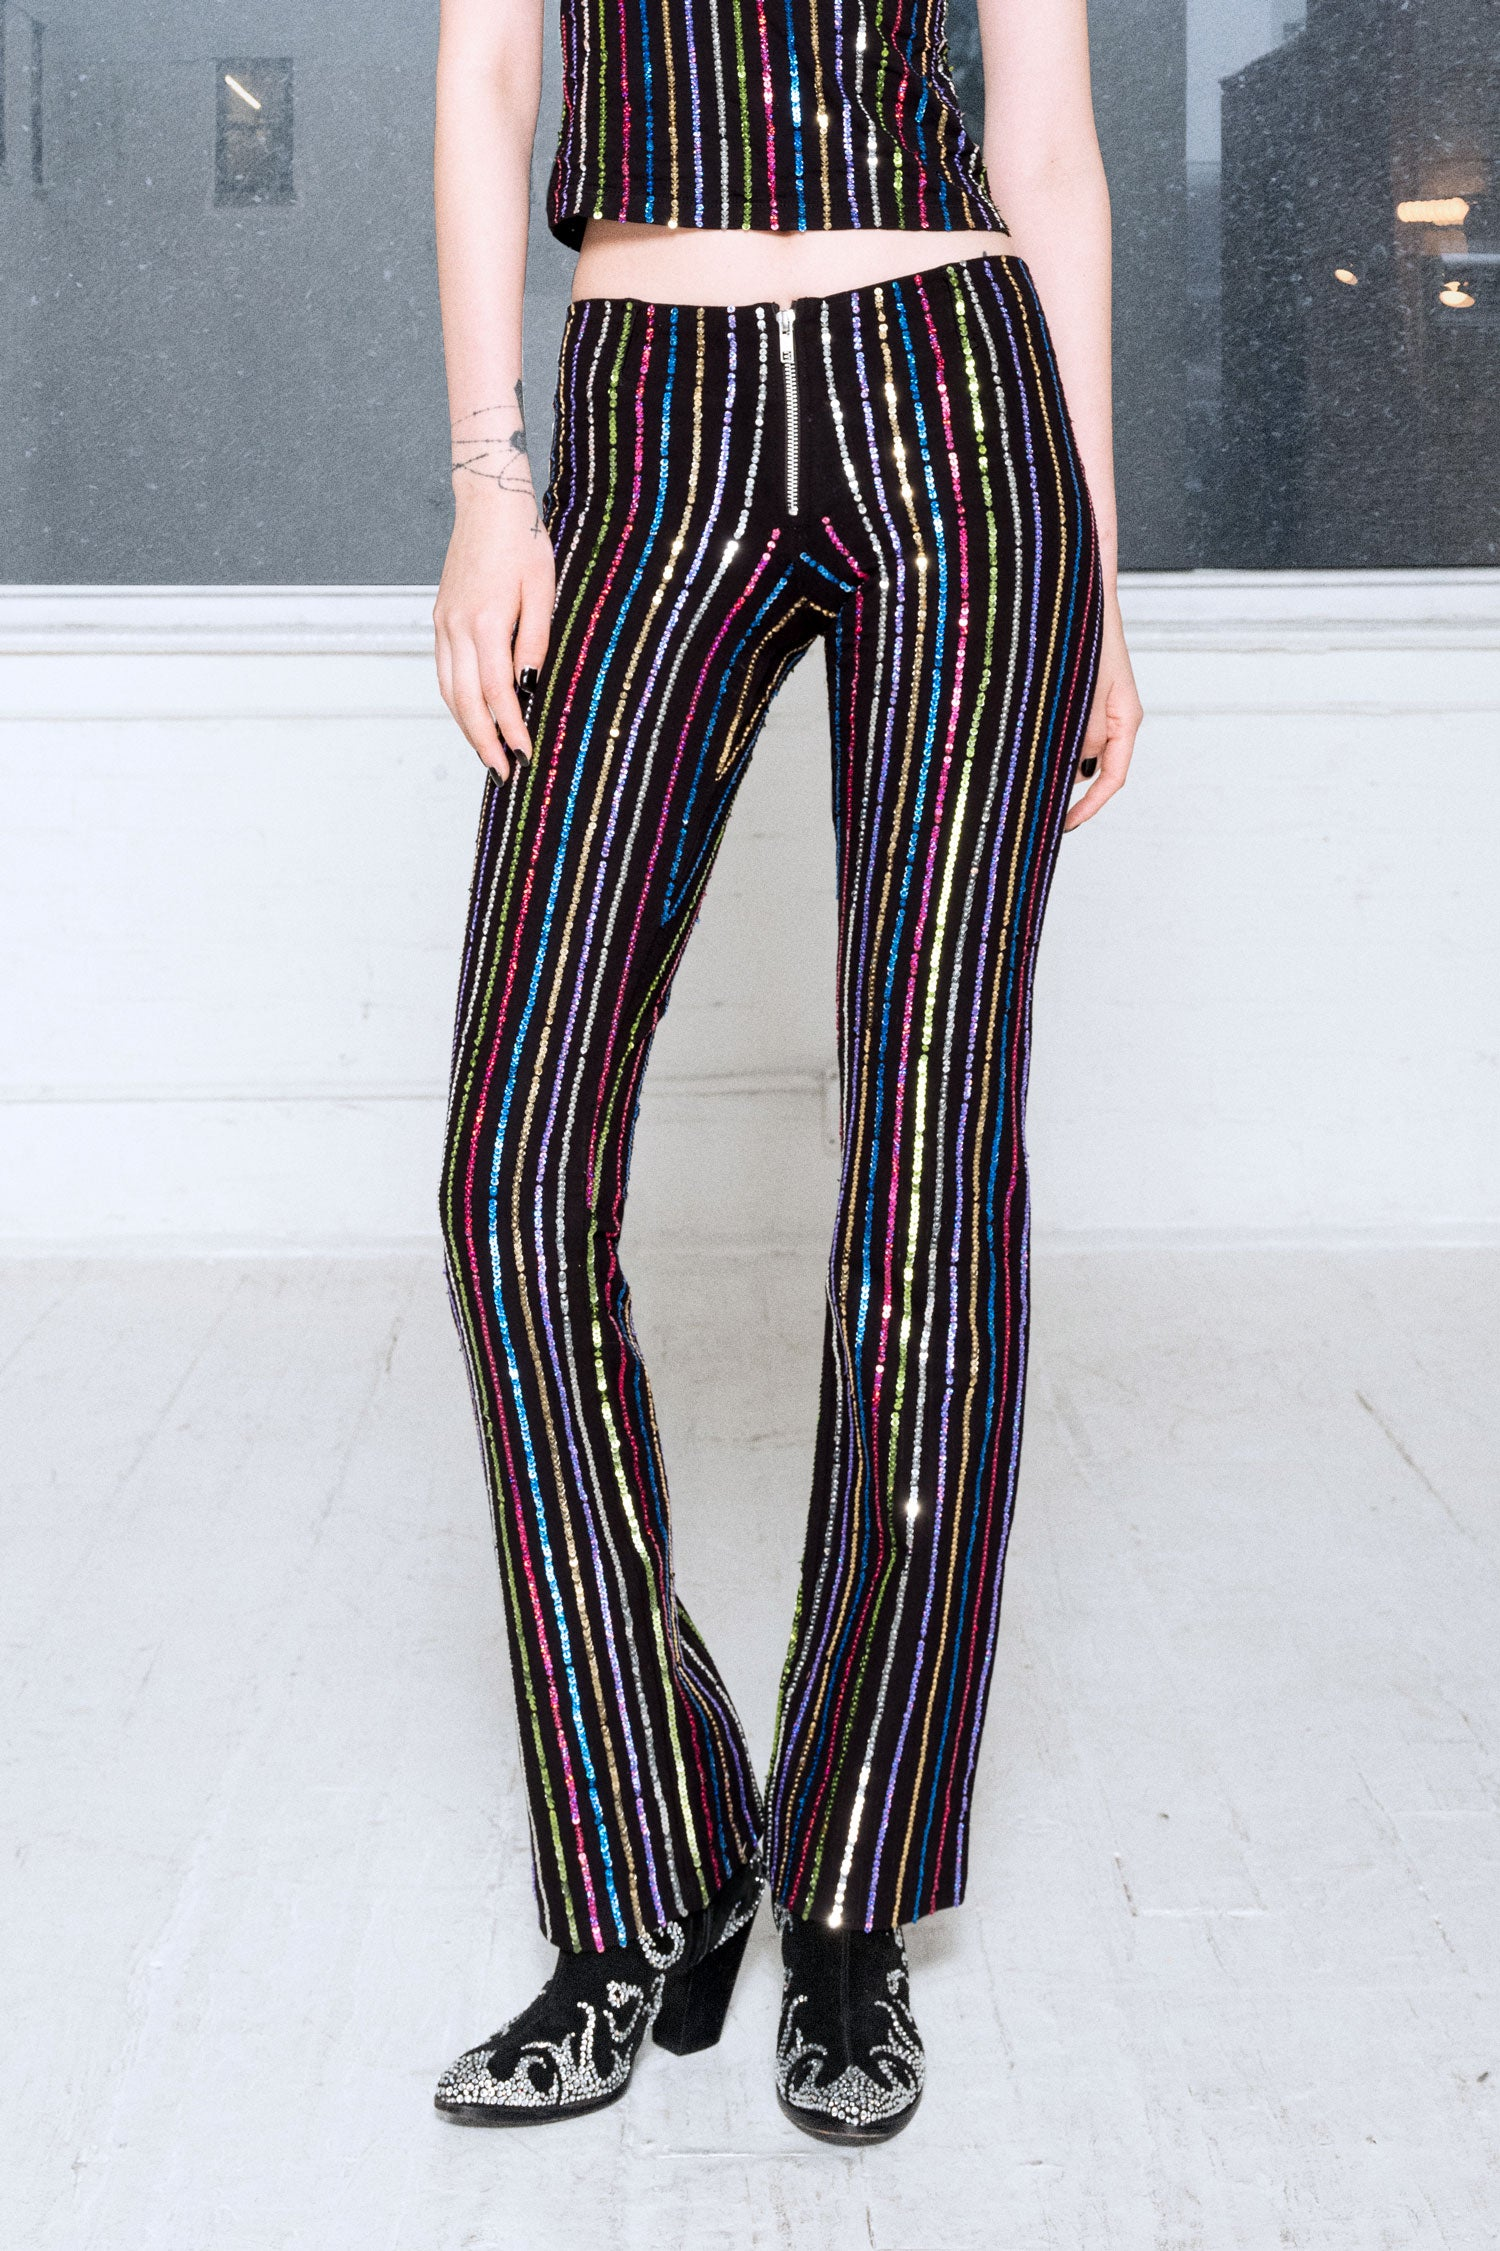 1999 Pinstripe Pants in Rainbow